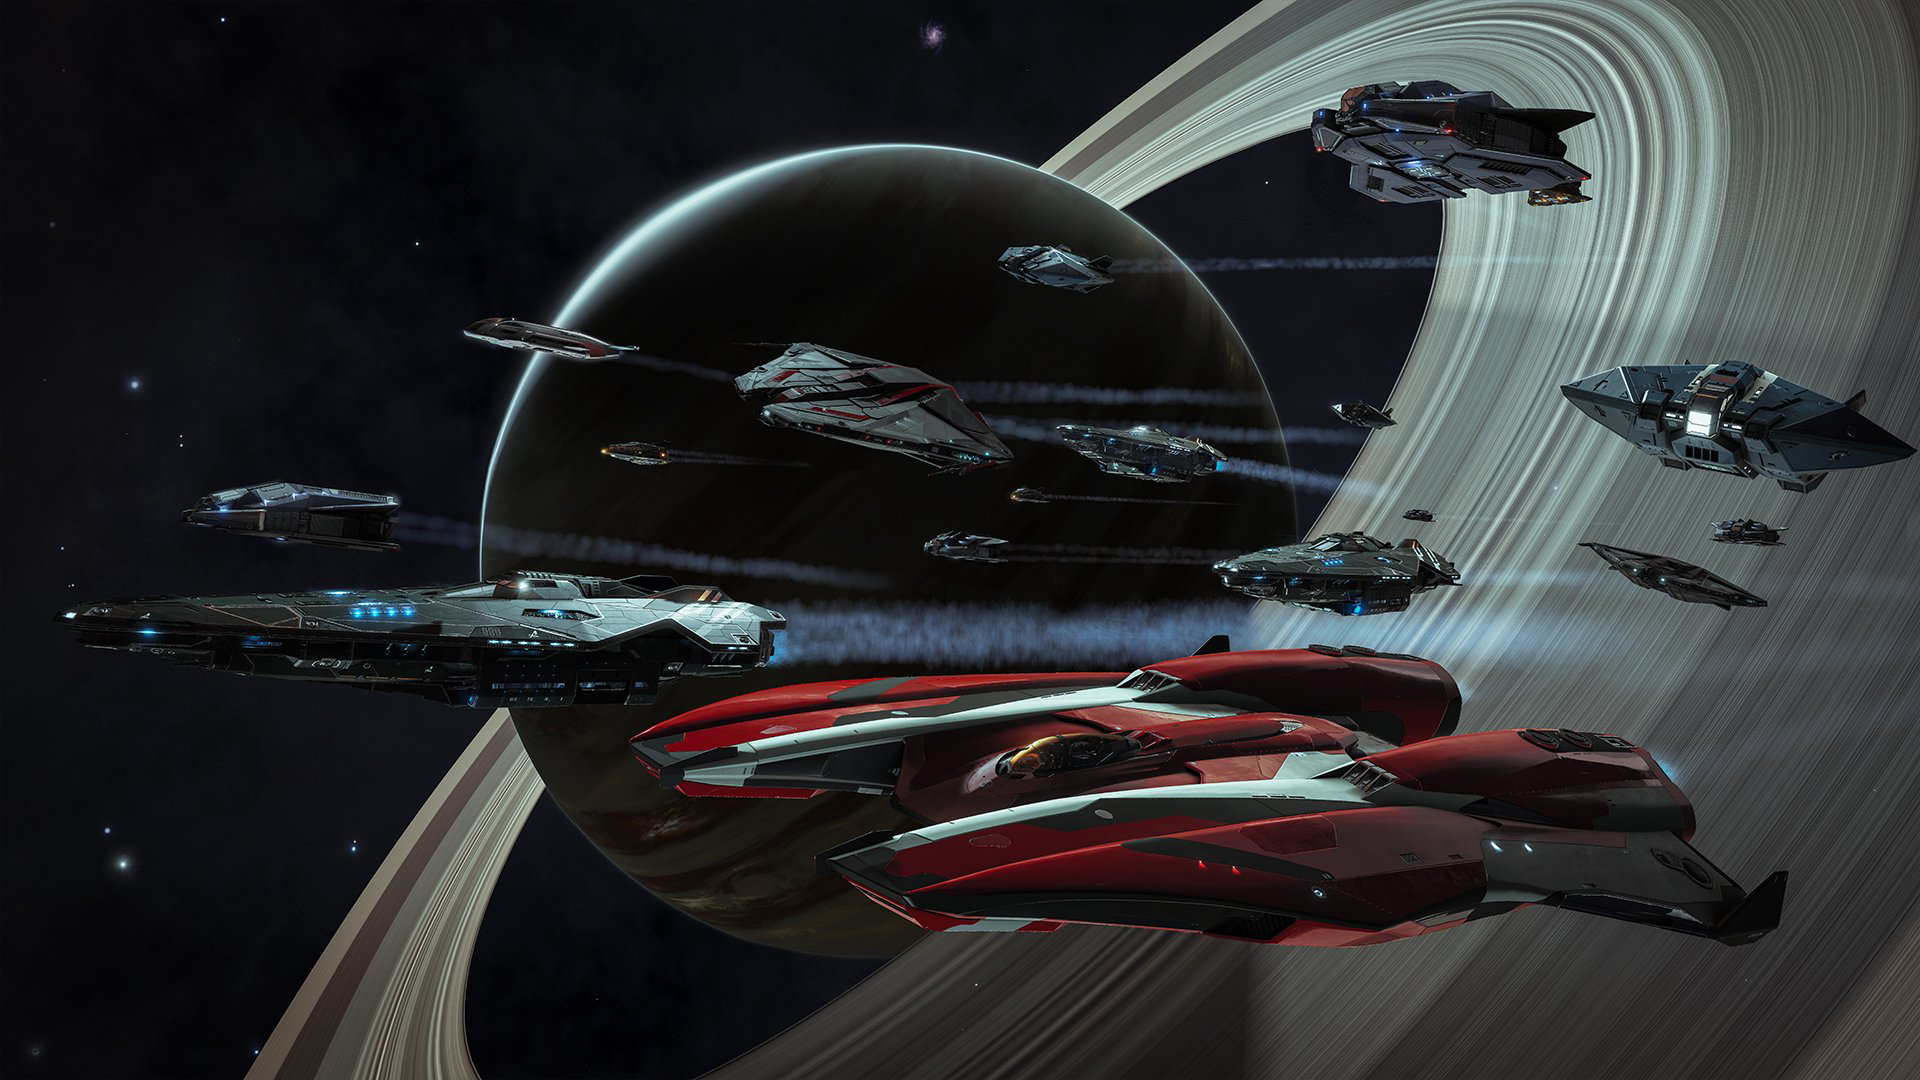 Best Ship Elite Dangerous 2019 Ships | Elite Dangerous Wiki | FANDOM powered by Wikia